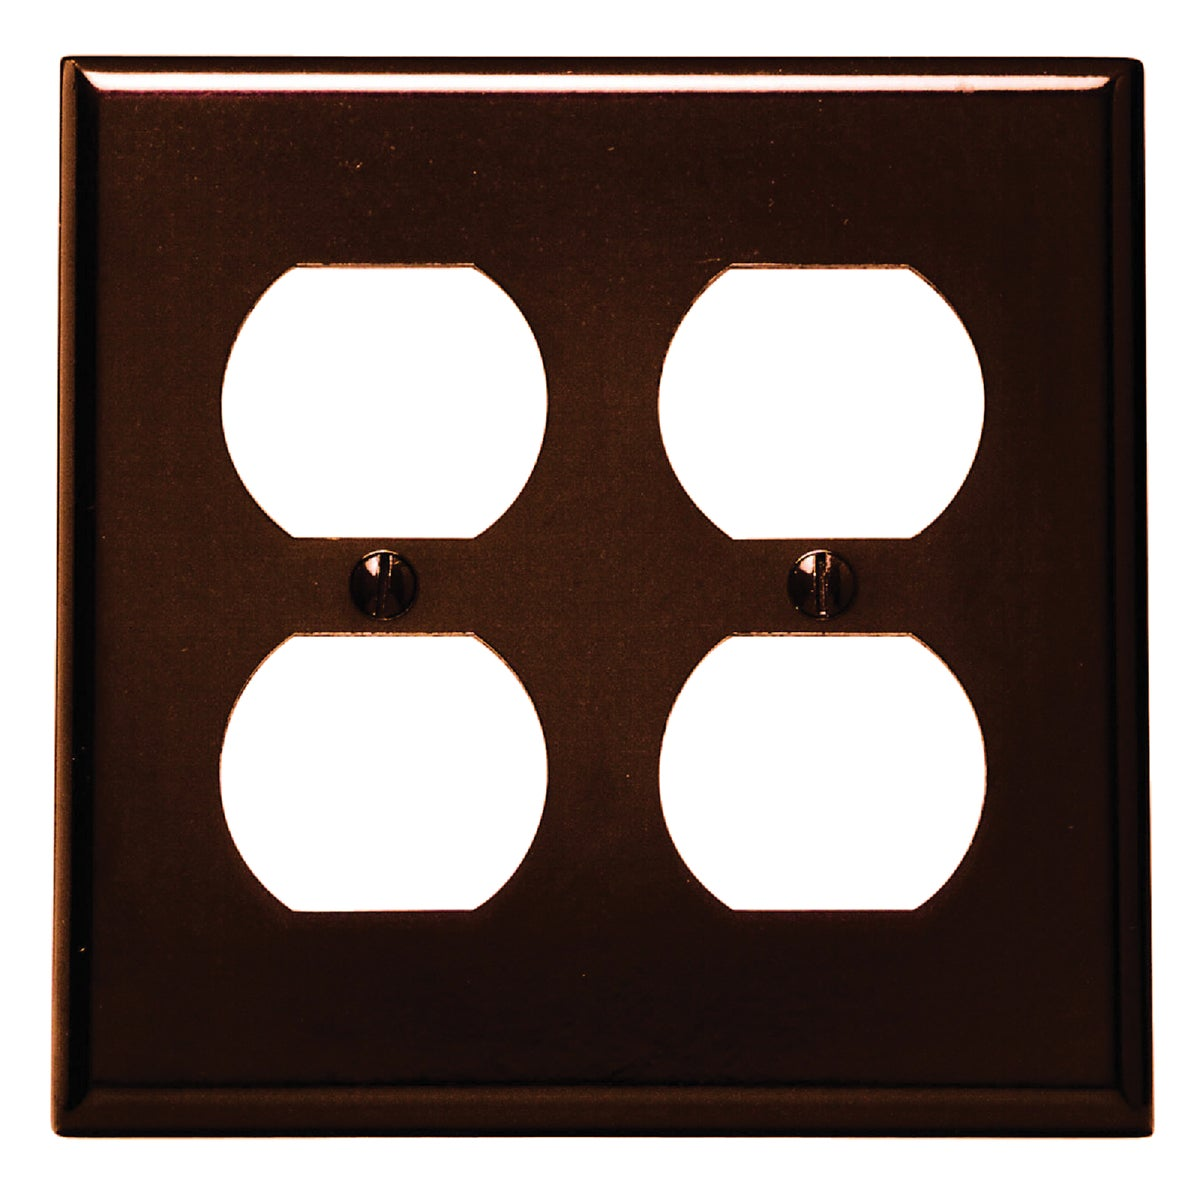 BRN 4-OUTLET WALL PLATE - 85016 by Leviton Mfg Co